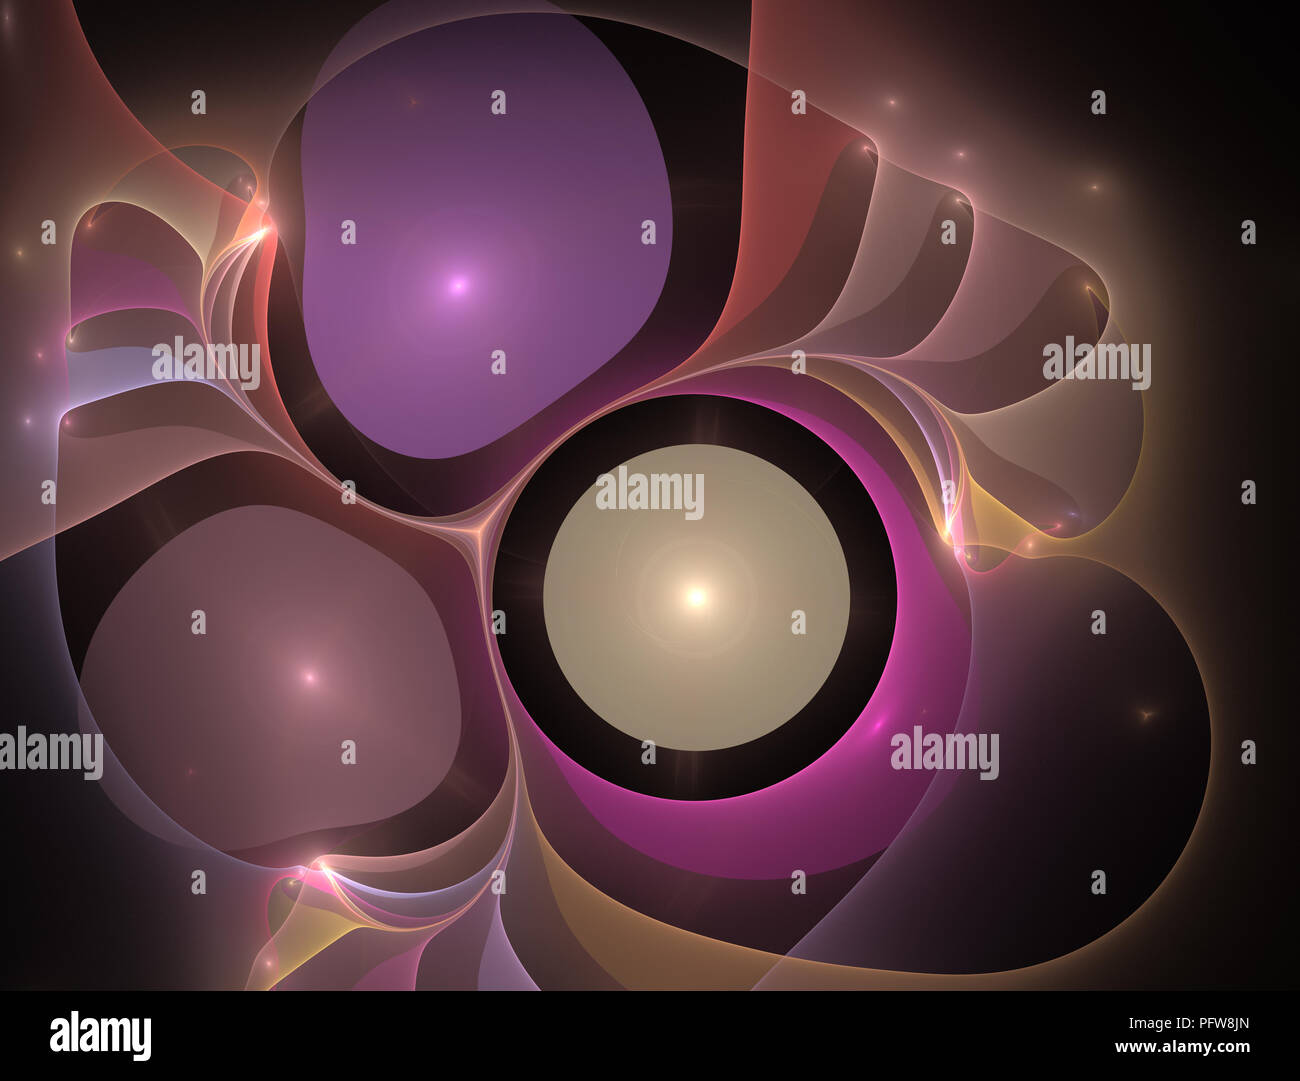 Elementary Particles series. Interplay of abstract fractal forms on the subject of nuclear physics. The collision of elementary particles. Interaction Stock Photo